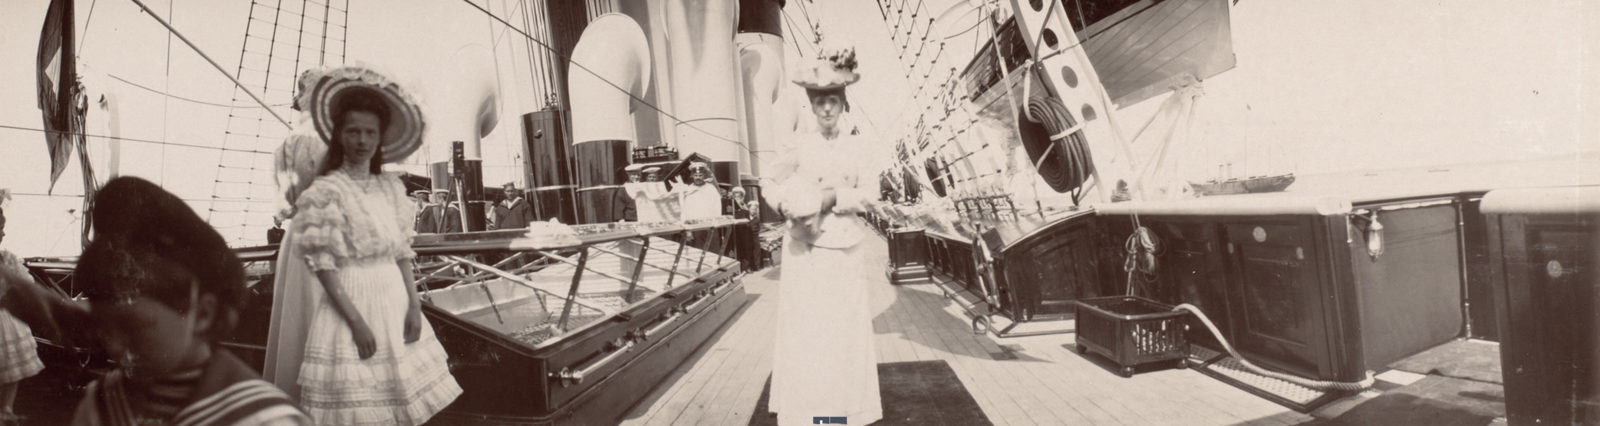 On board of Imperial Yacht Standart  June 1908